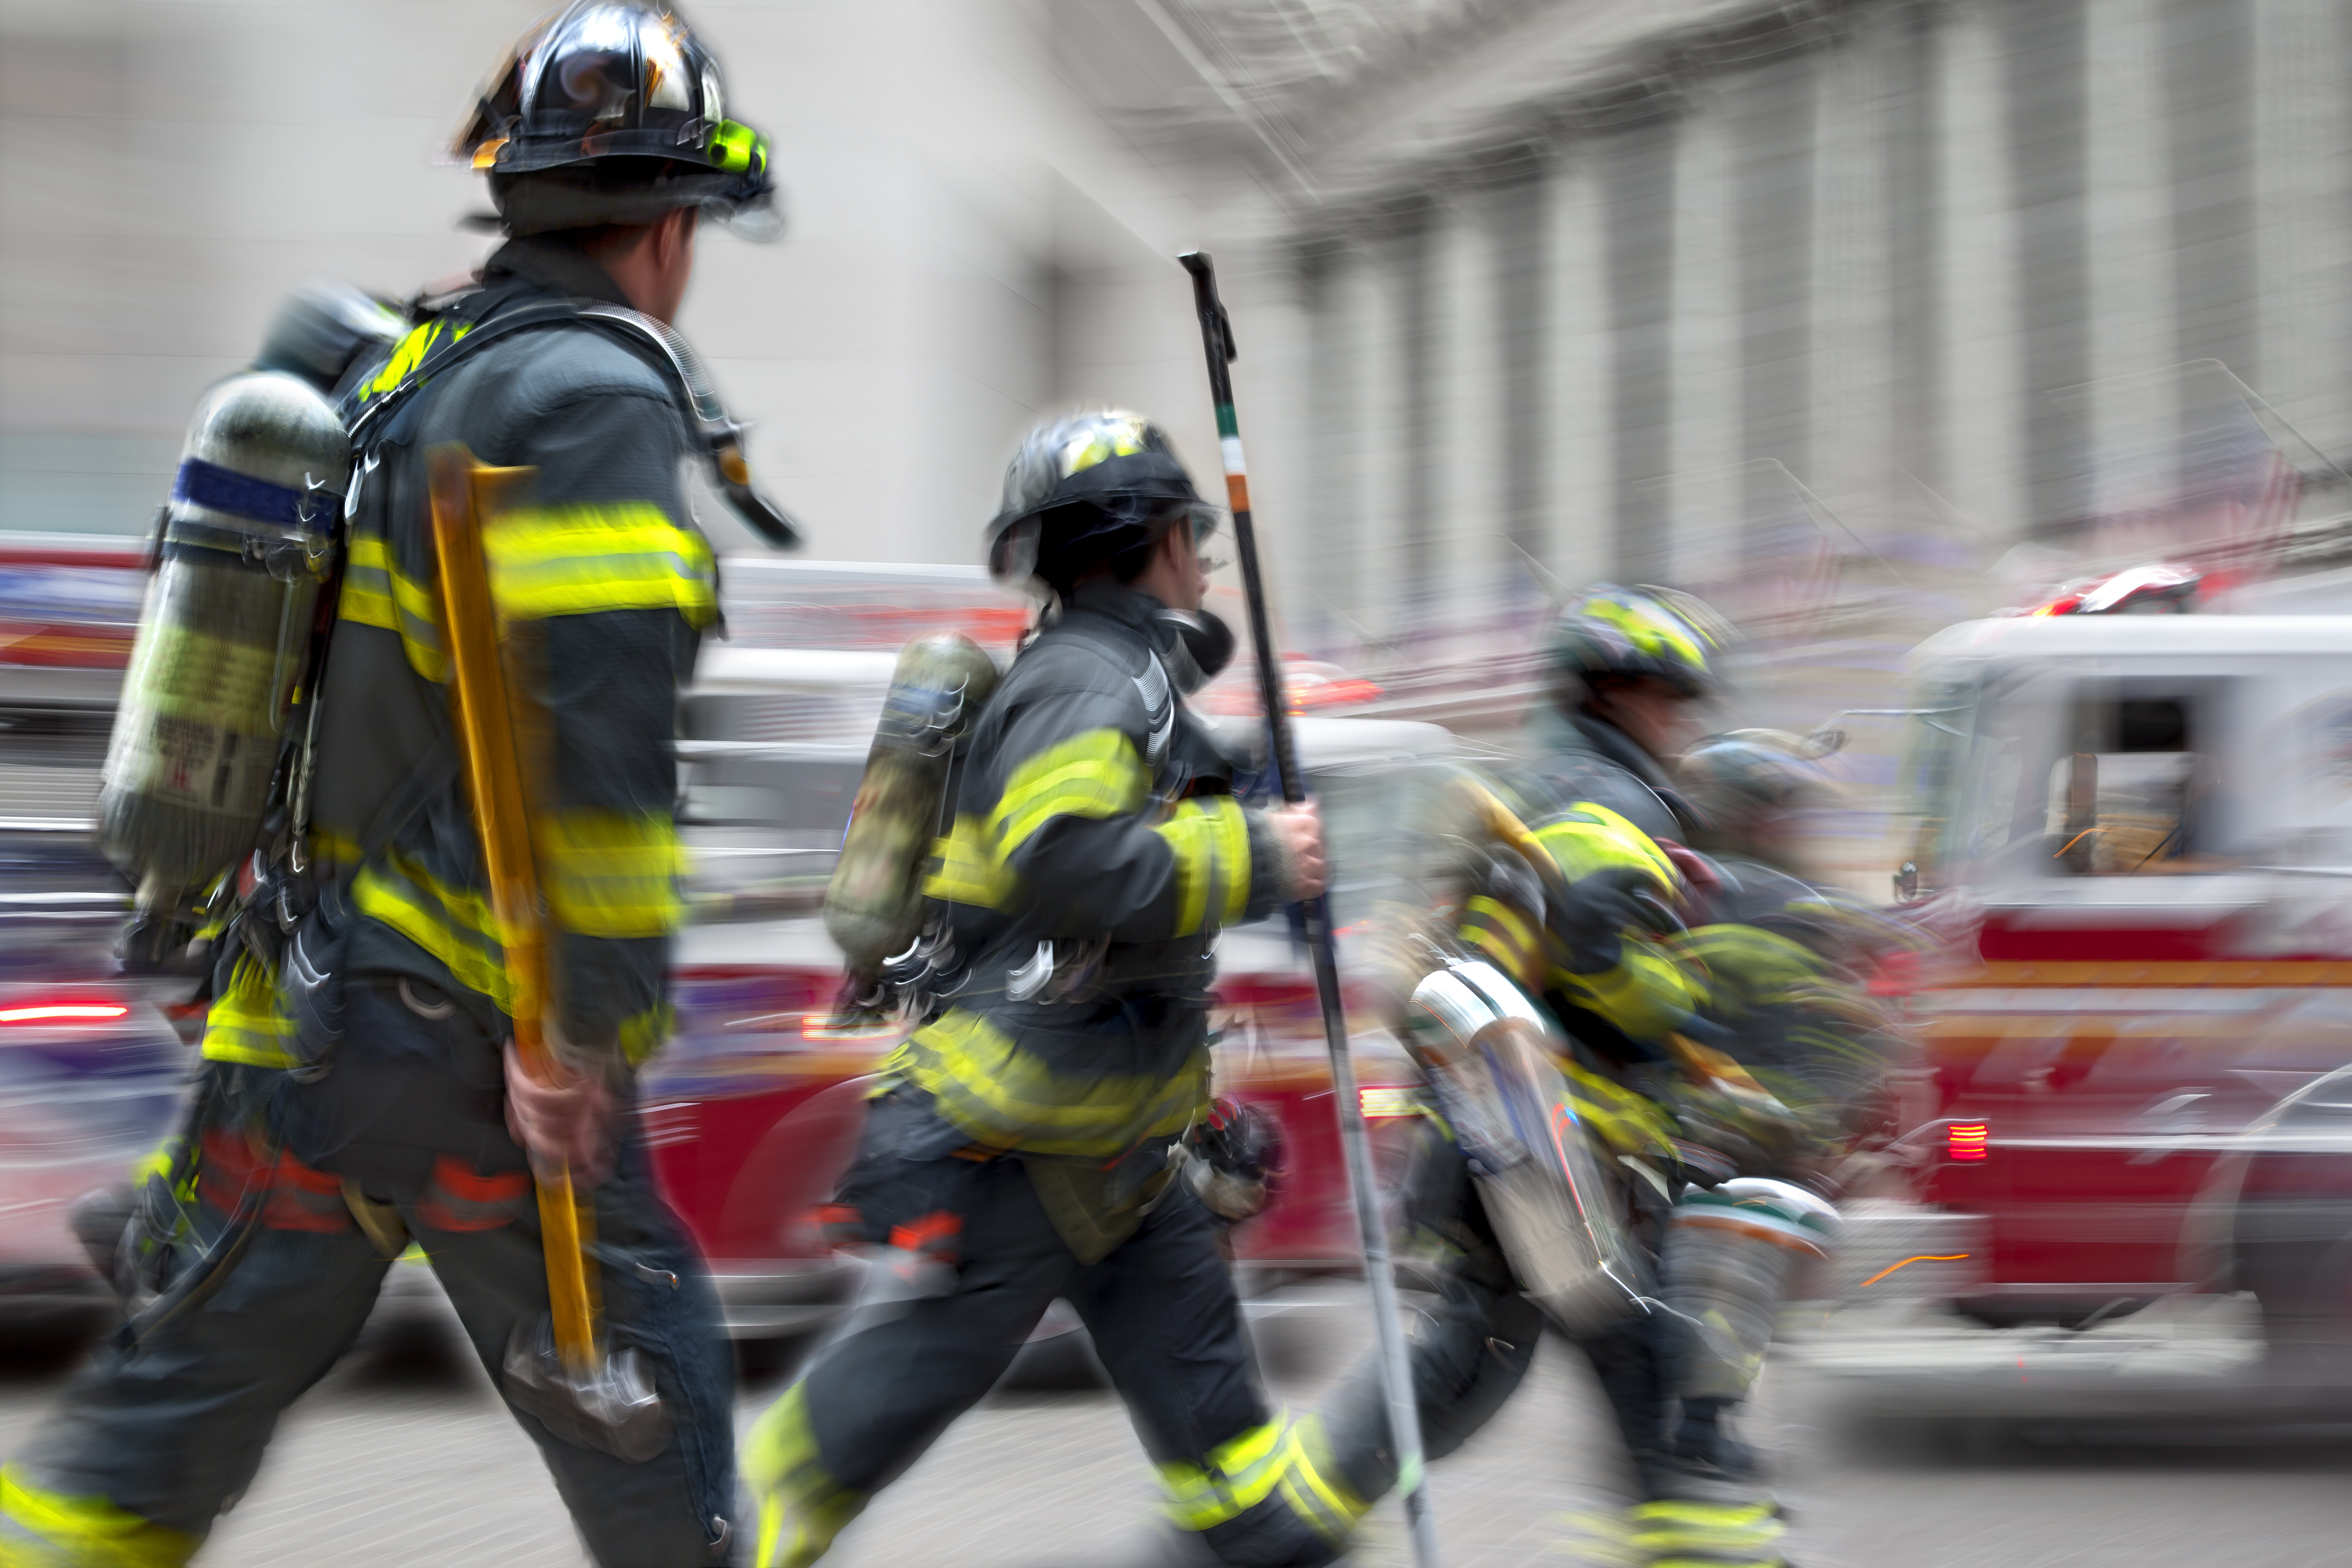 Fire + EMS Burnout: Causes, Signs + Effects